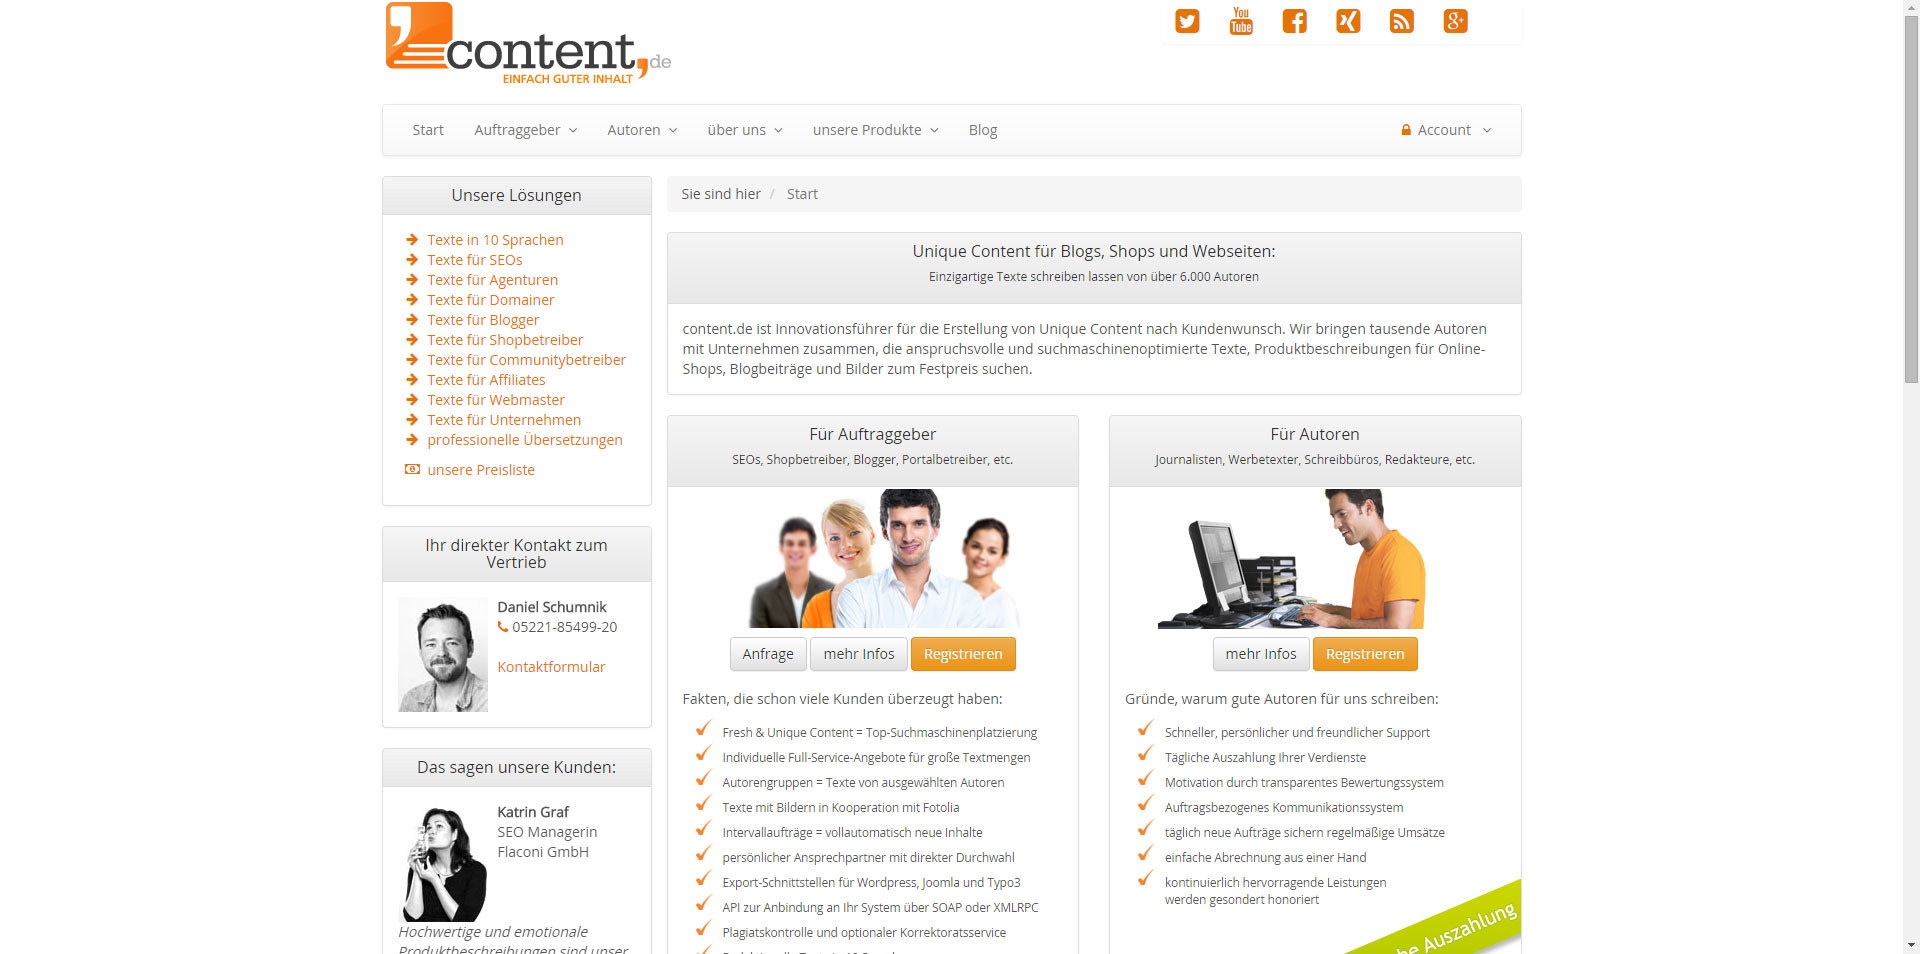 marketingatyourservice - Partner - content.de